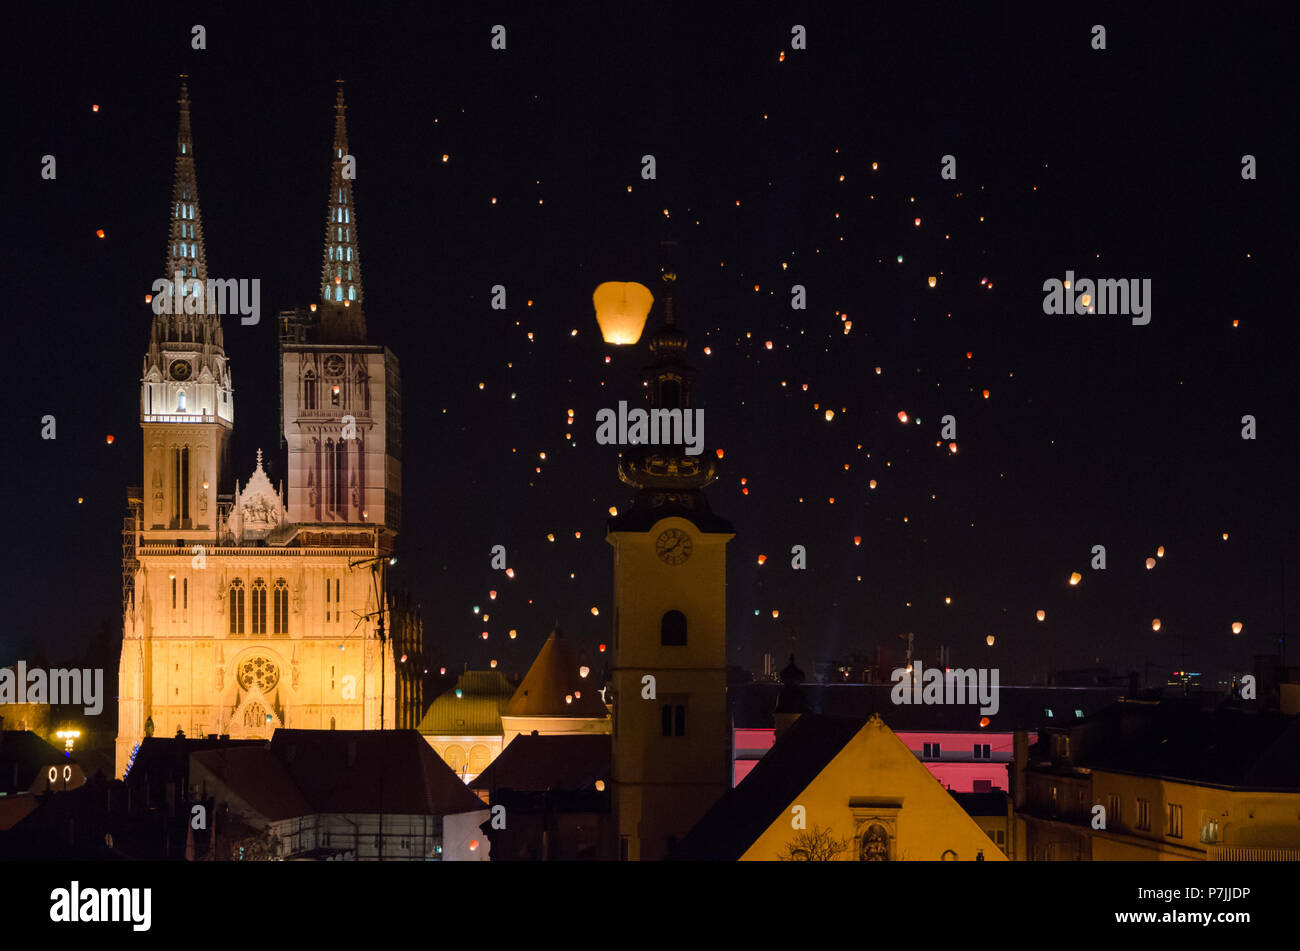 Floating Lanterns Festival In Zagreb Croatia With Cathedral In Background Stock Photo Alamy